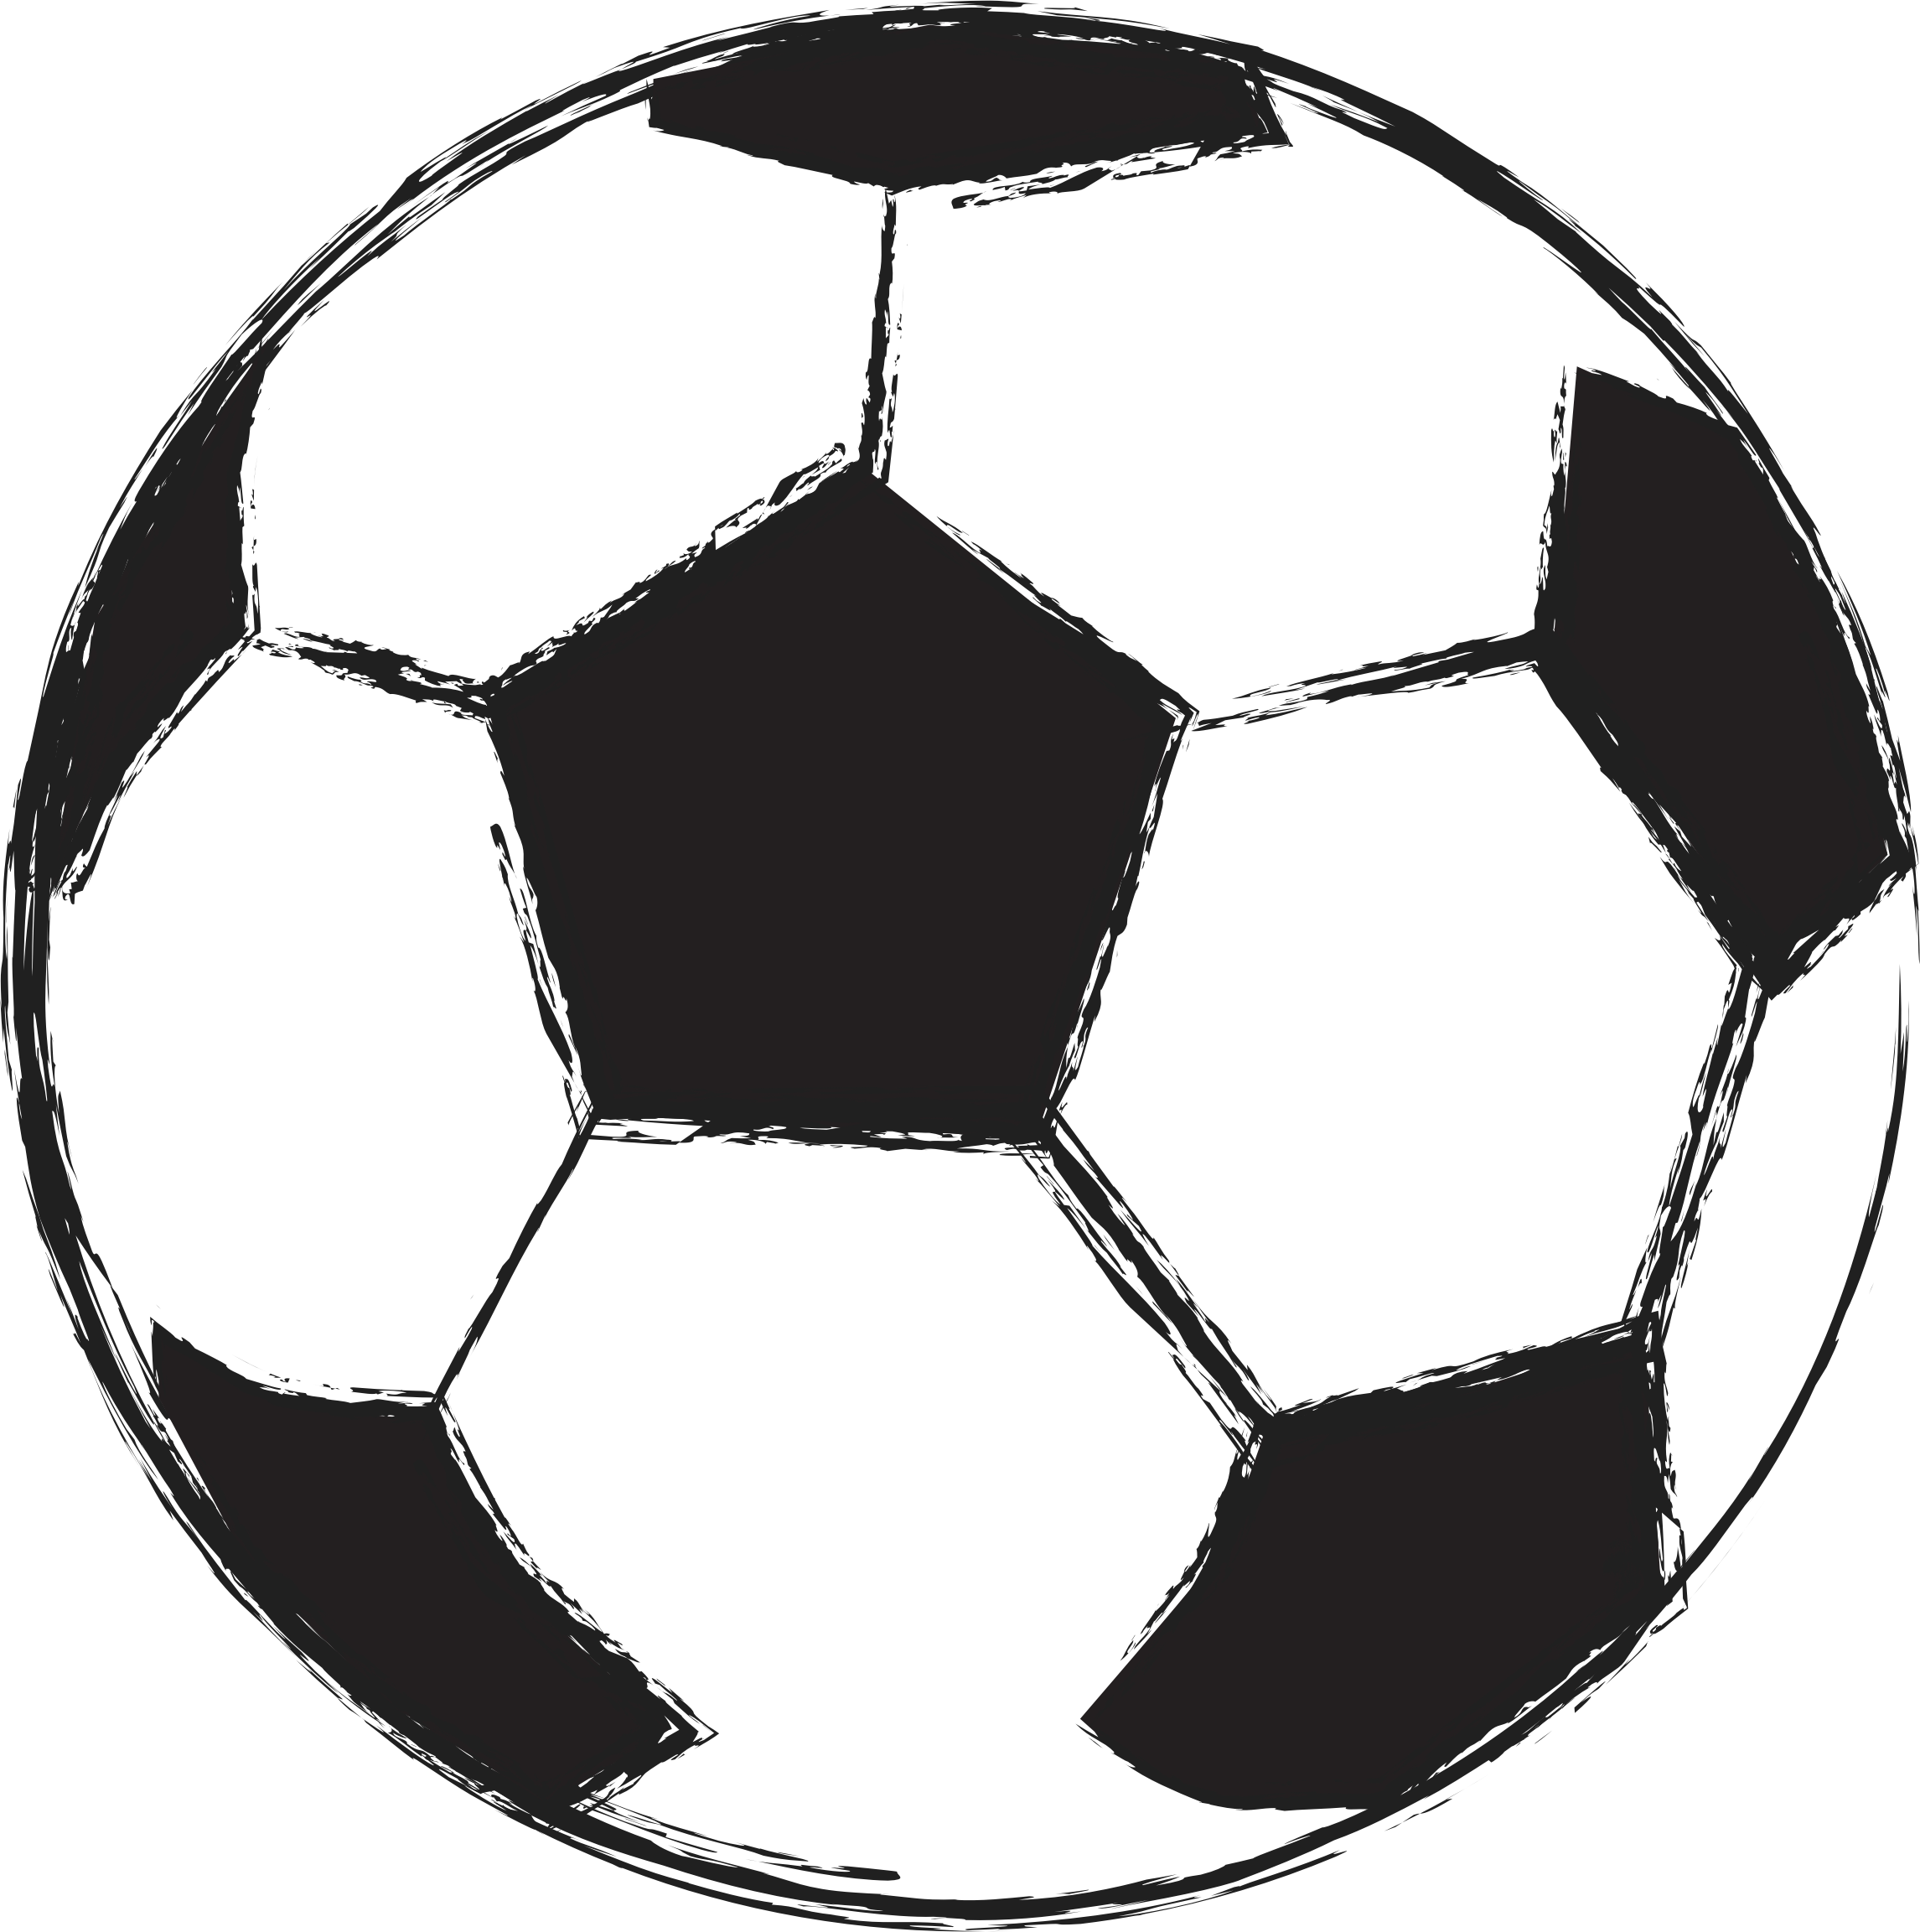 Clipart football sketch.  collection of soccer